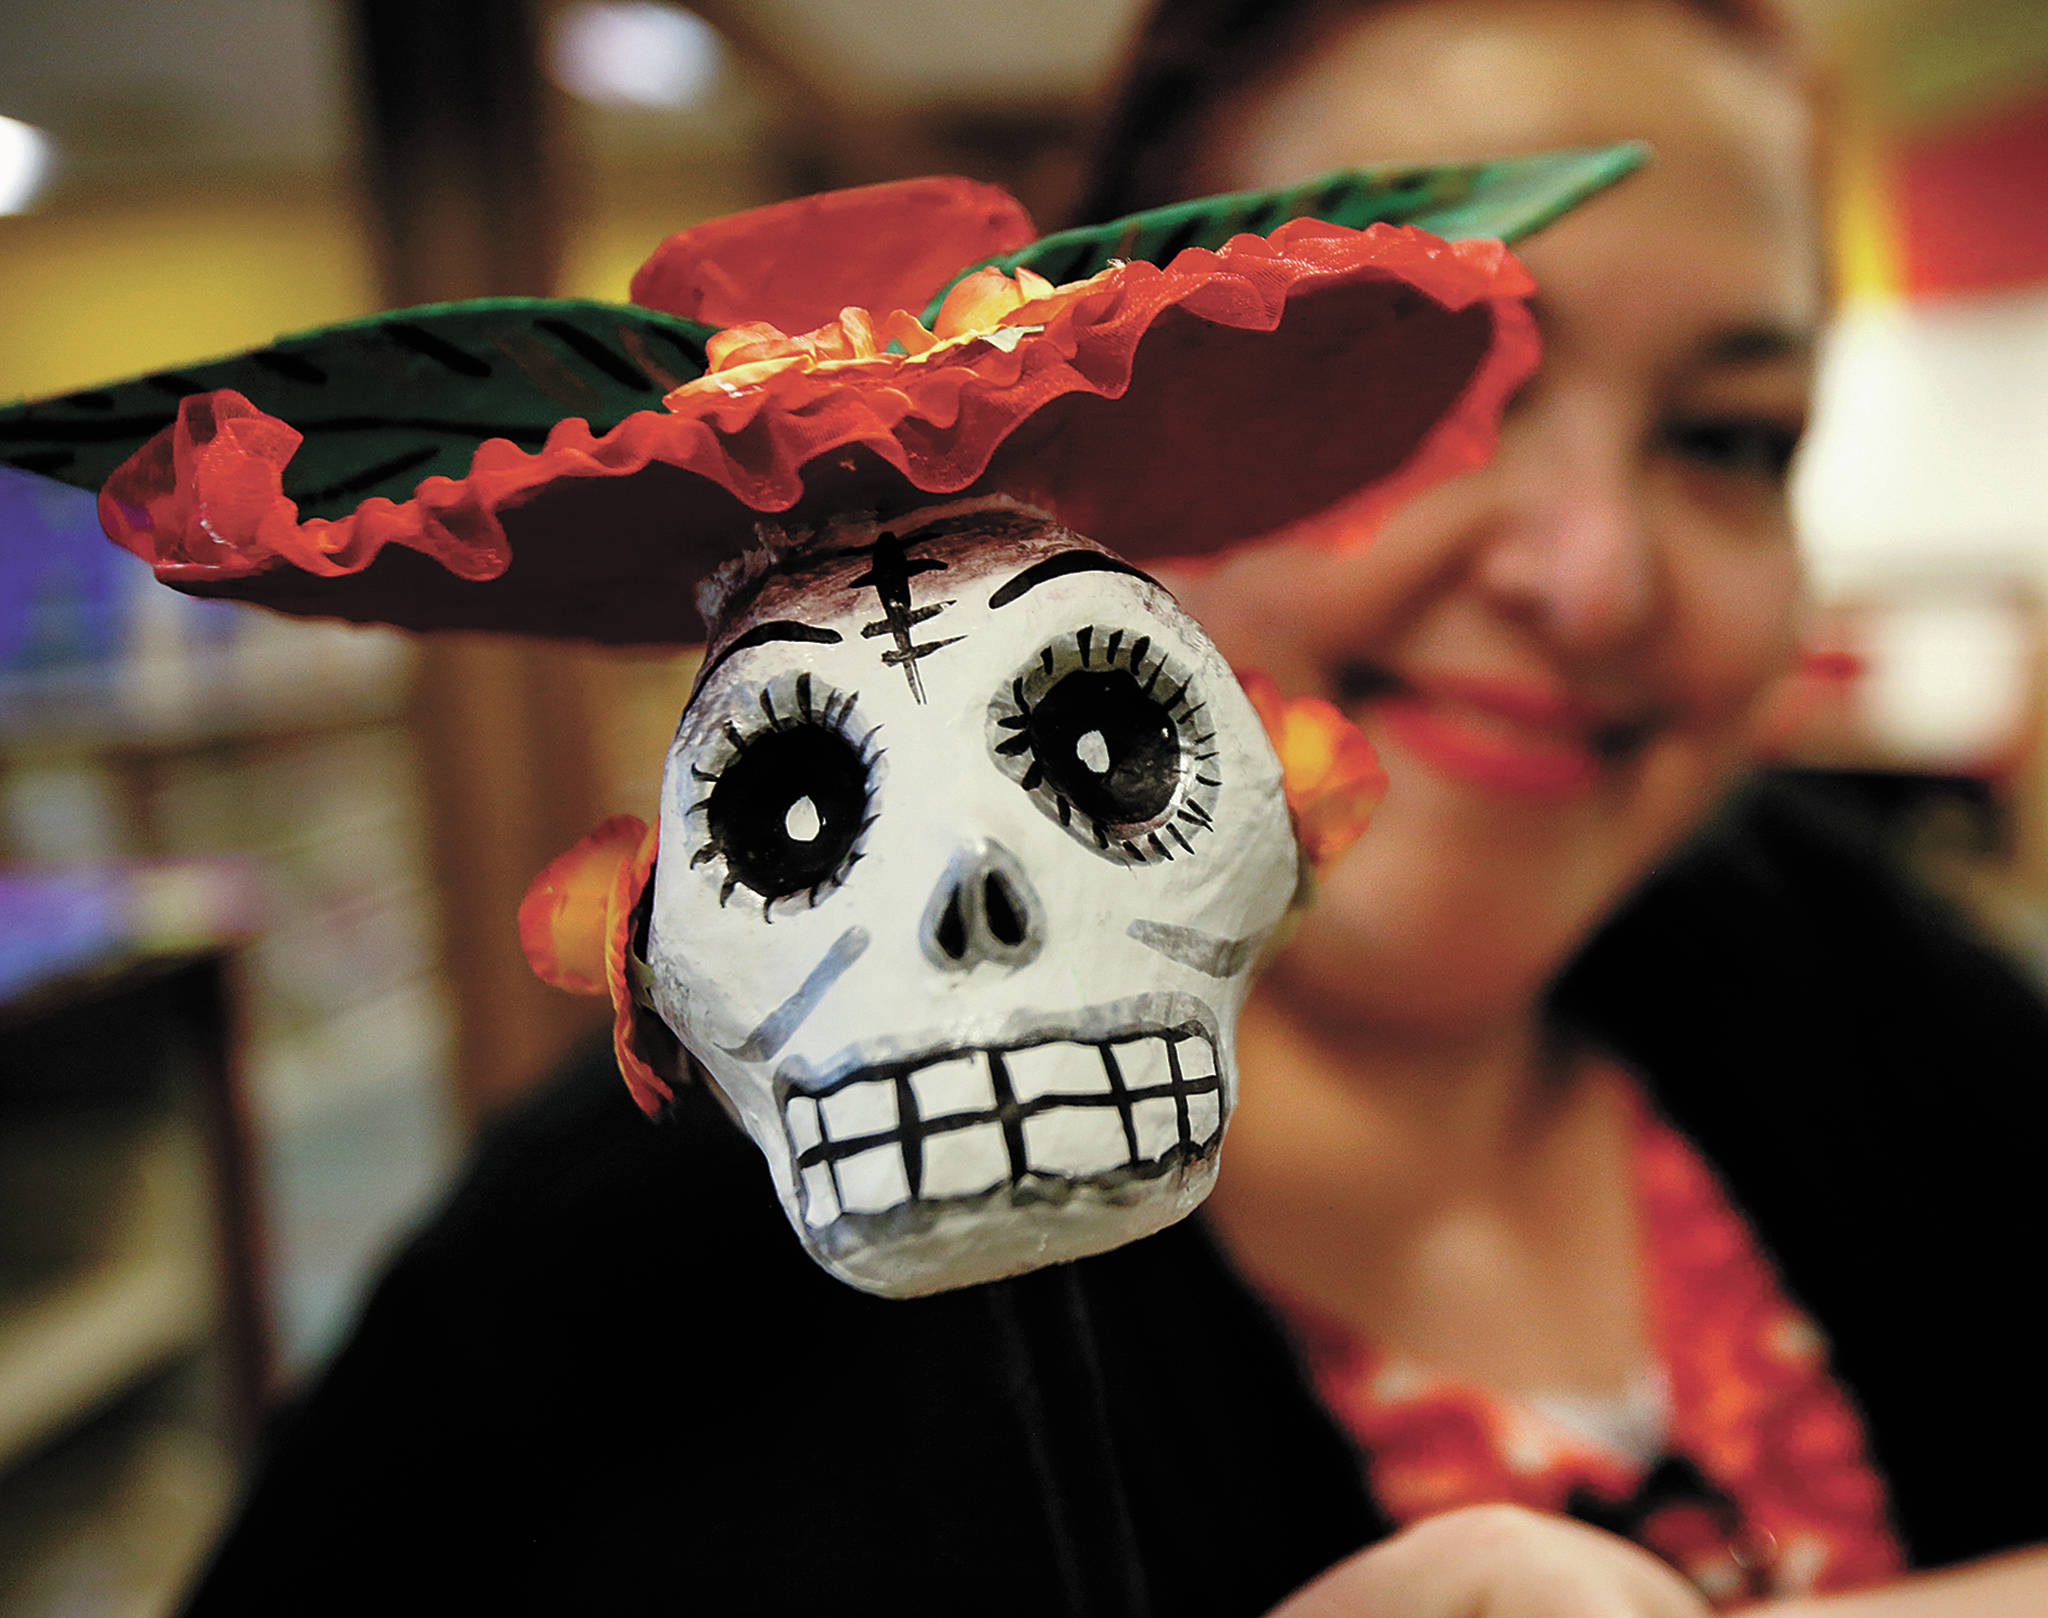 Helping set up a Dia de los Muertos display in the Lynnwood Library was Lupita Zamora, who holds up a skeleton head on a stick. (Dan Bates / The Herald)